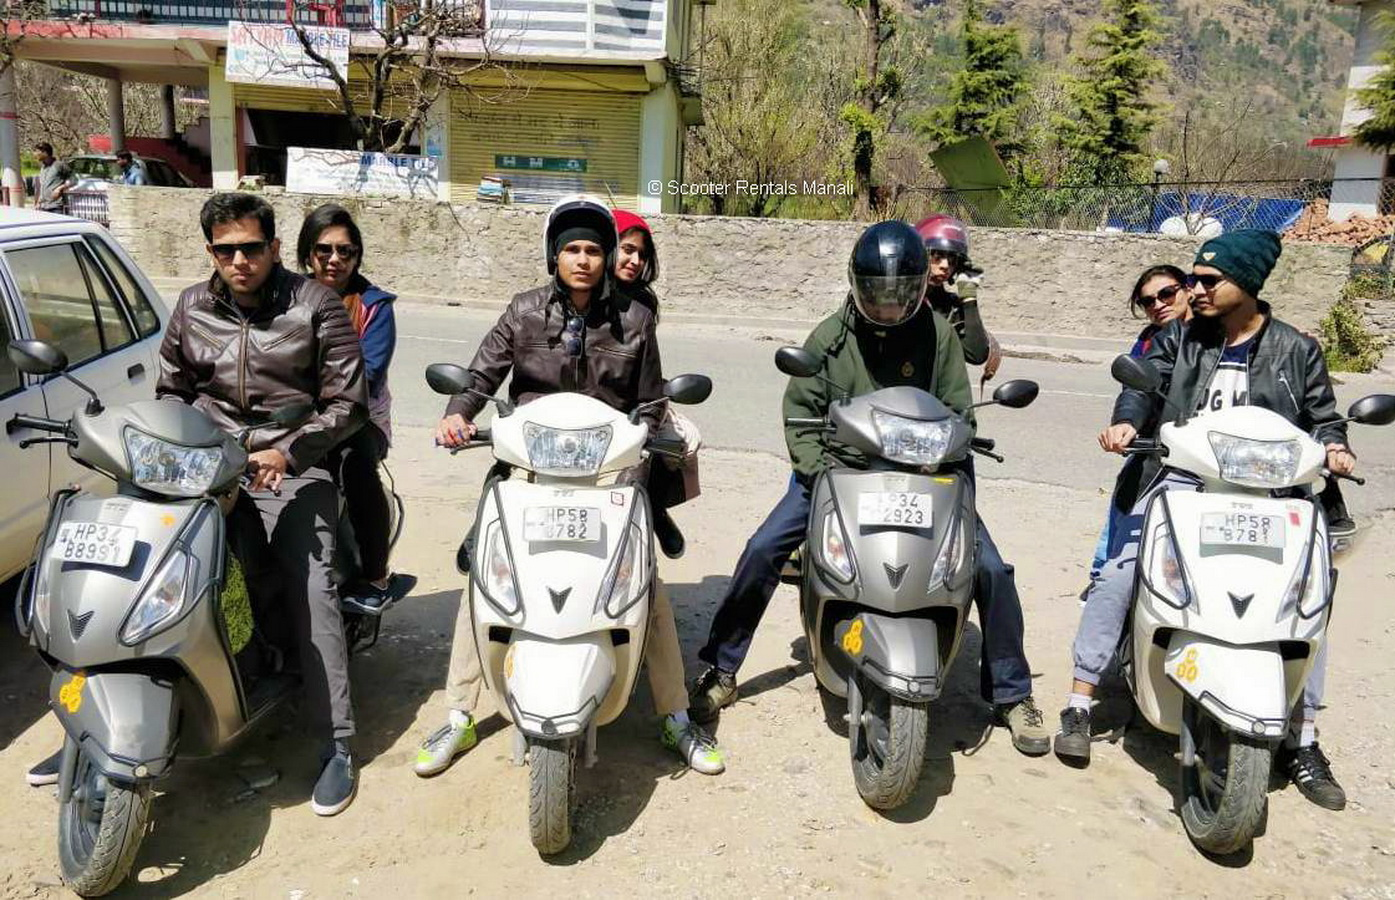 ScooterRentalsManali-130